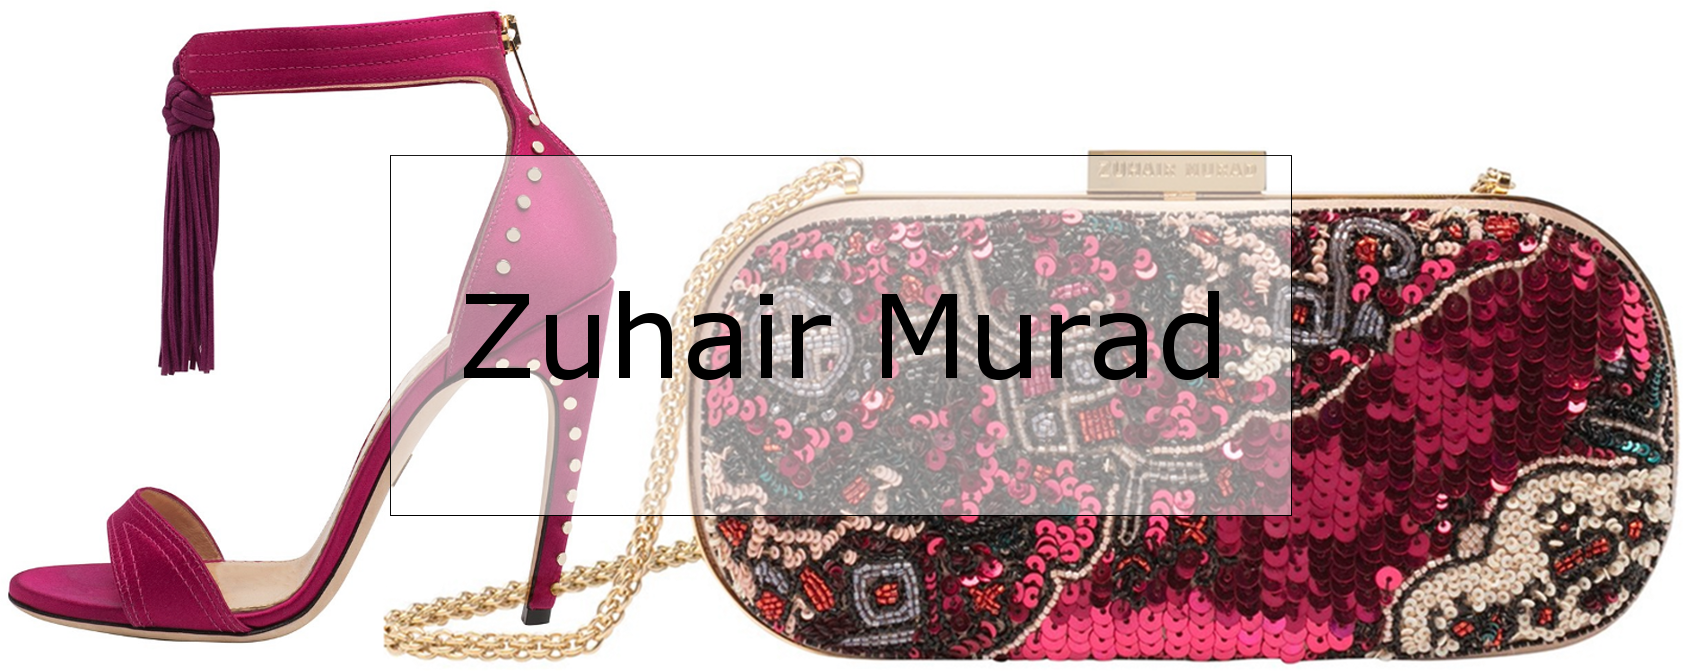 Zuhair Murad studded tassel sandals and embroidered clutch in  in pink